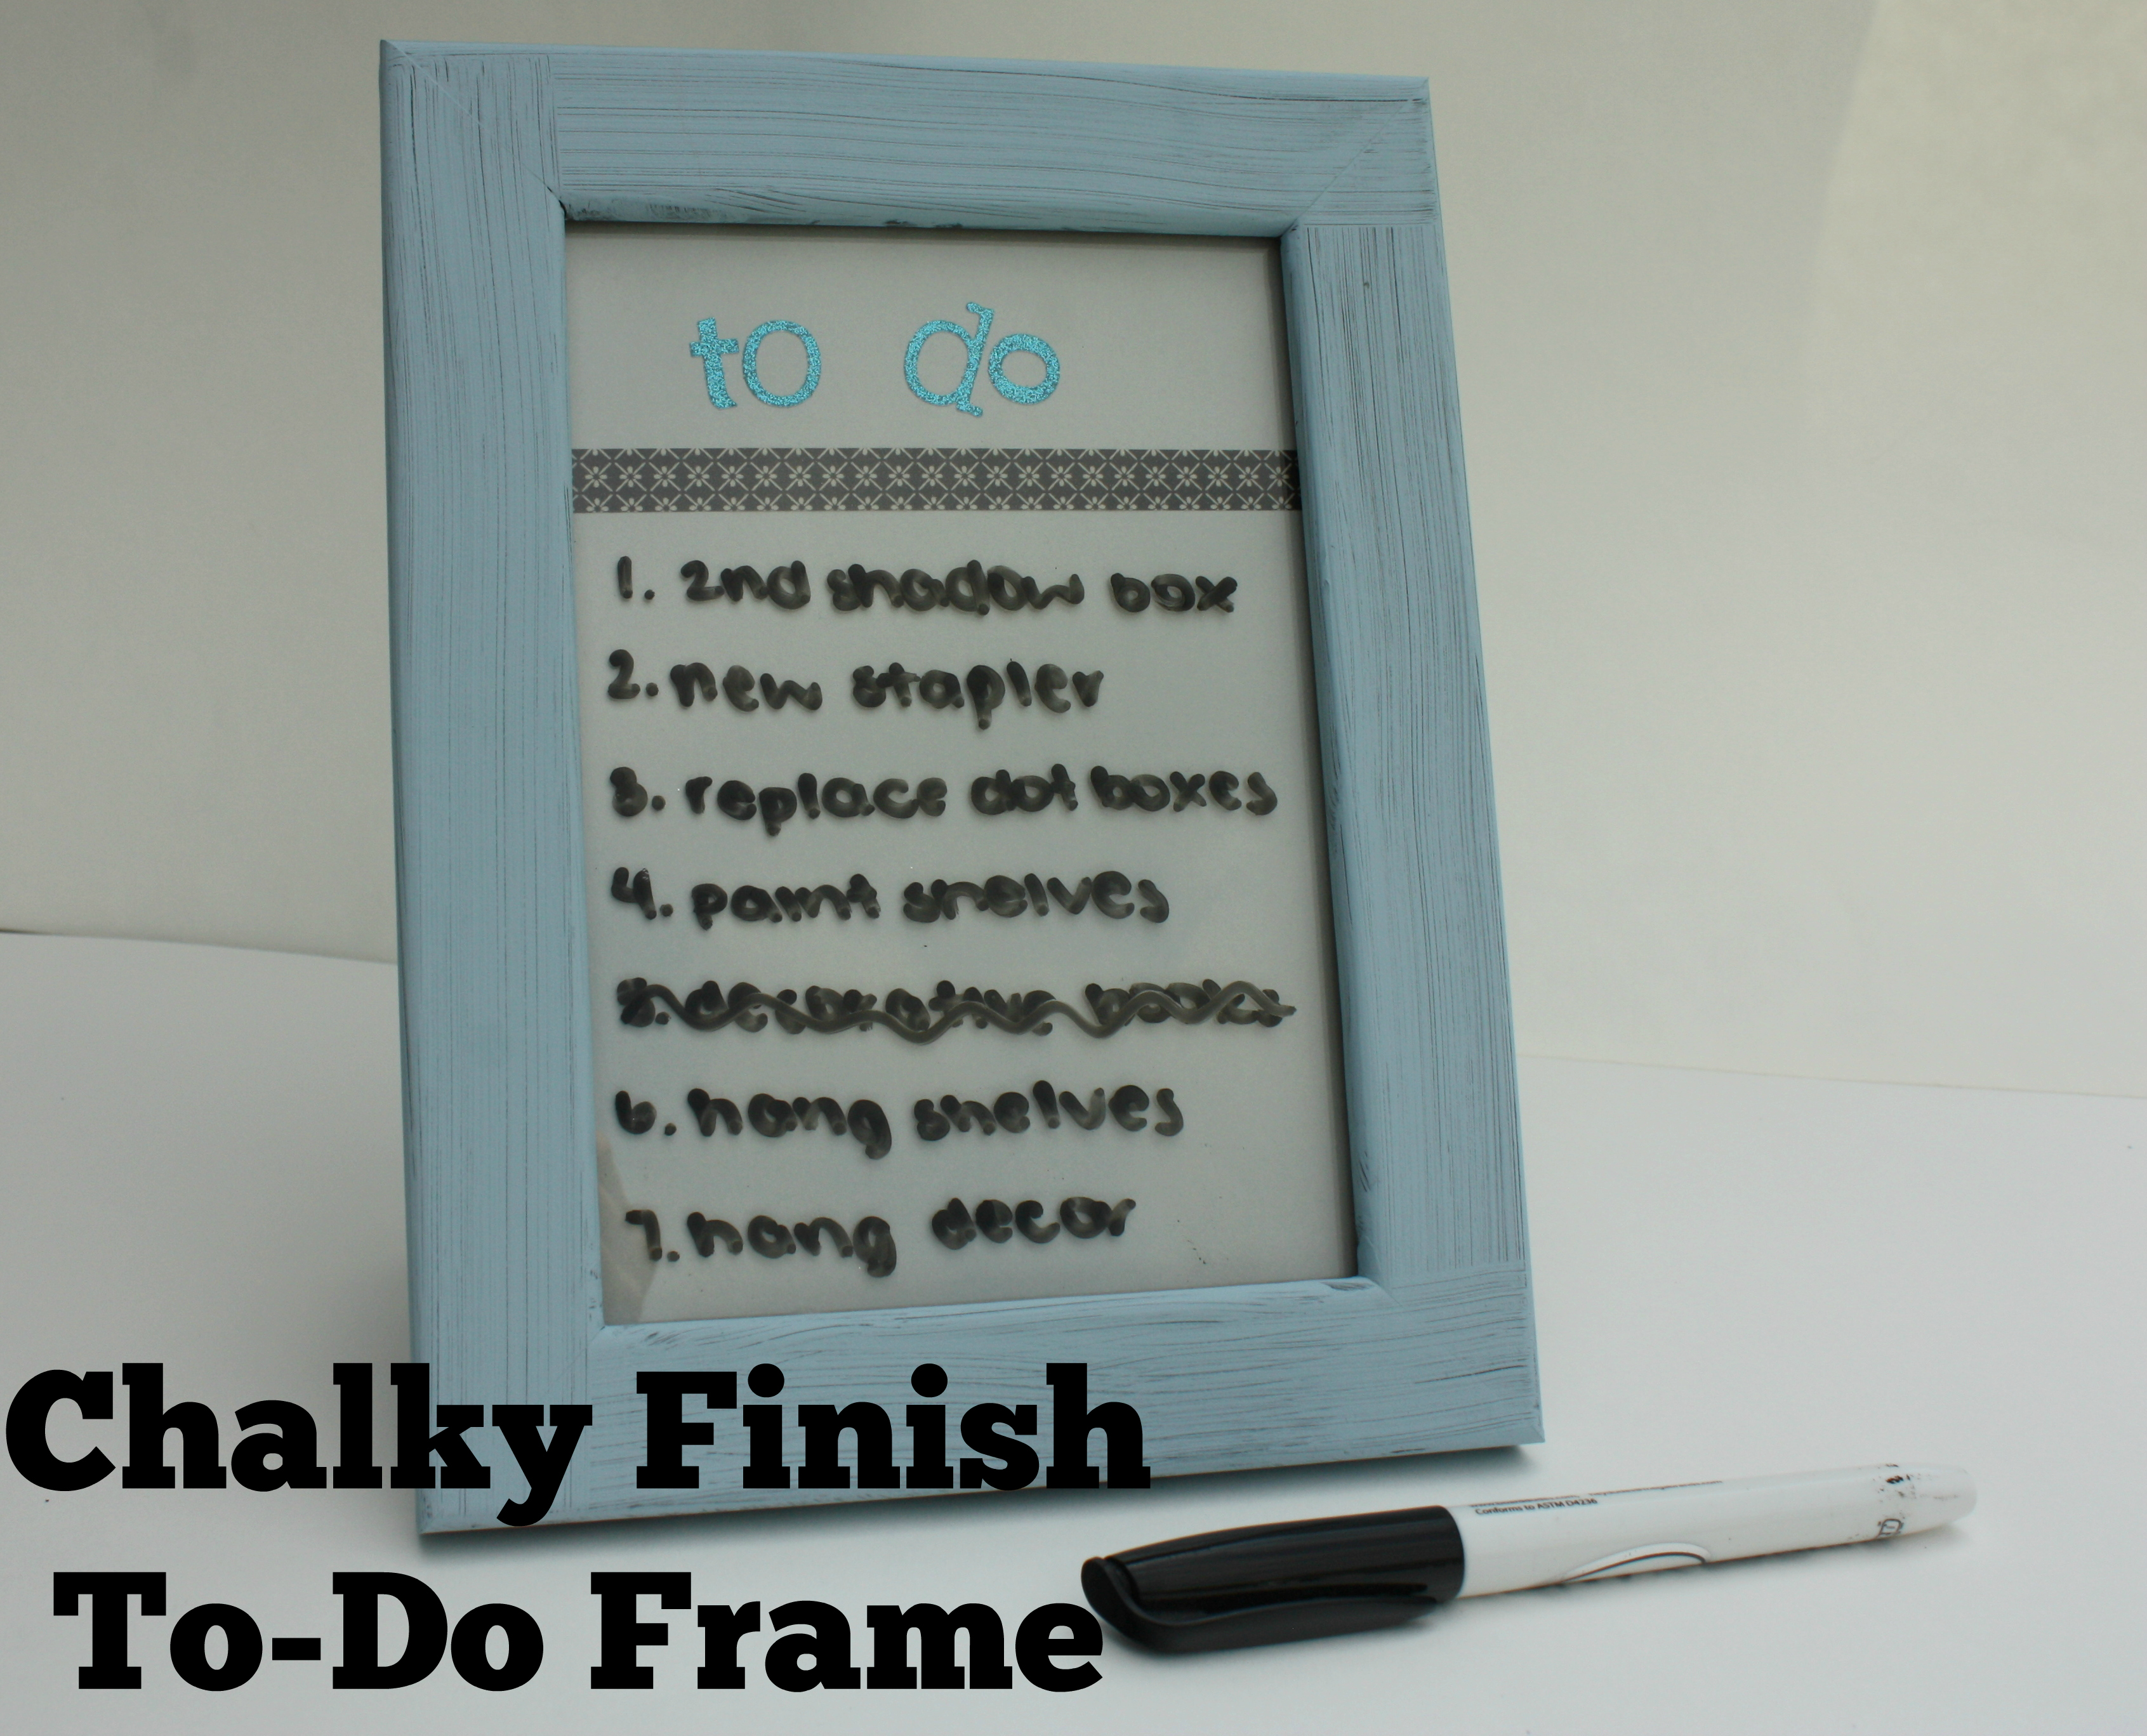 DecoArt Dry Erase Board Frame - A Little Craft In Your Day